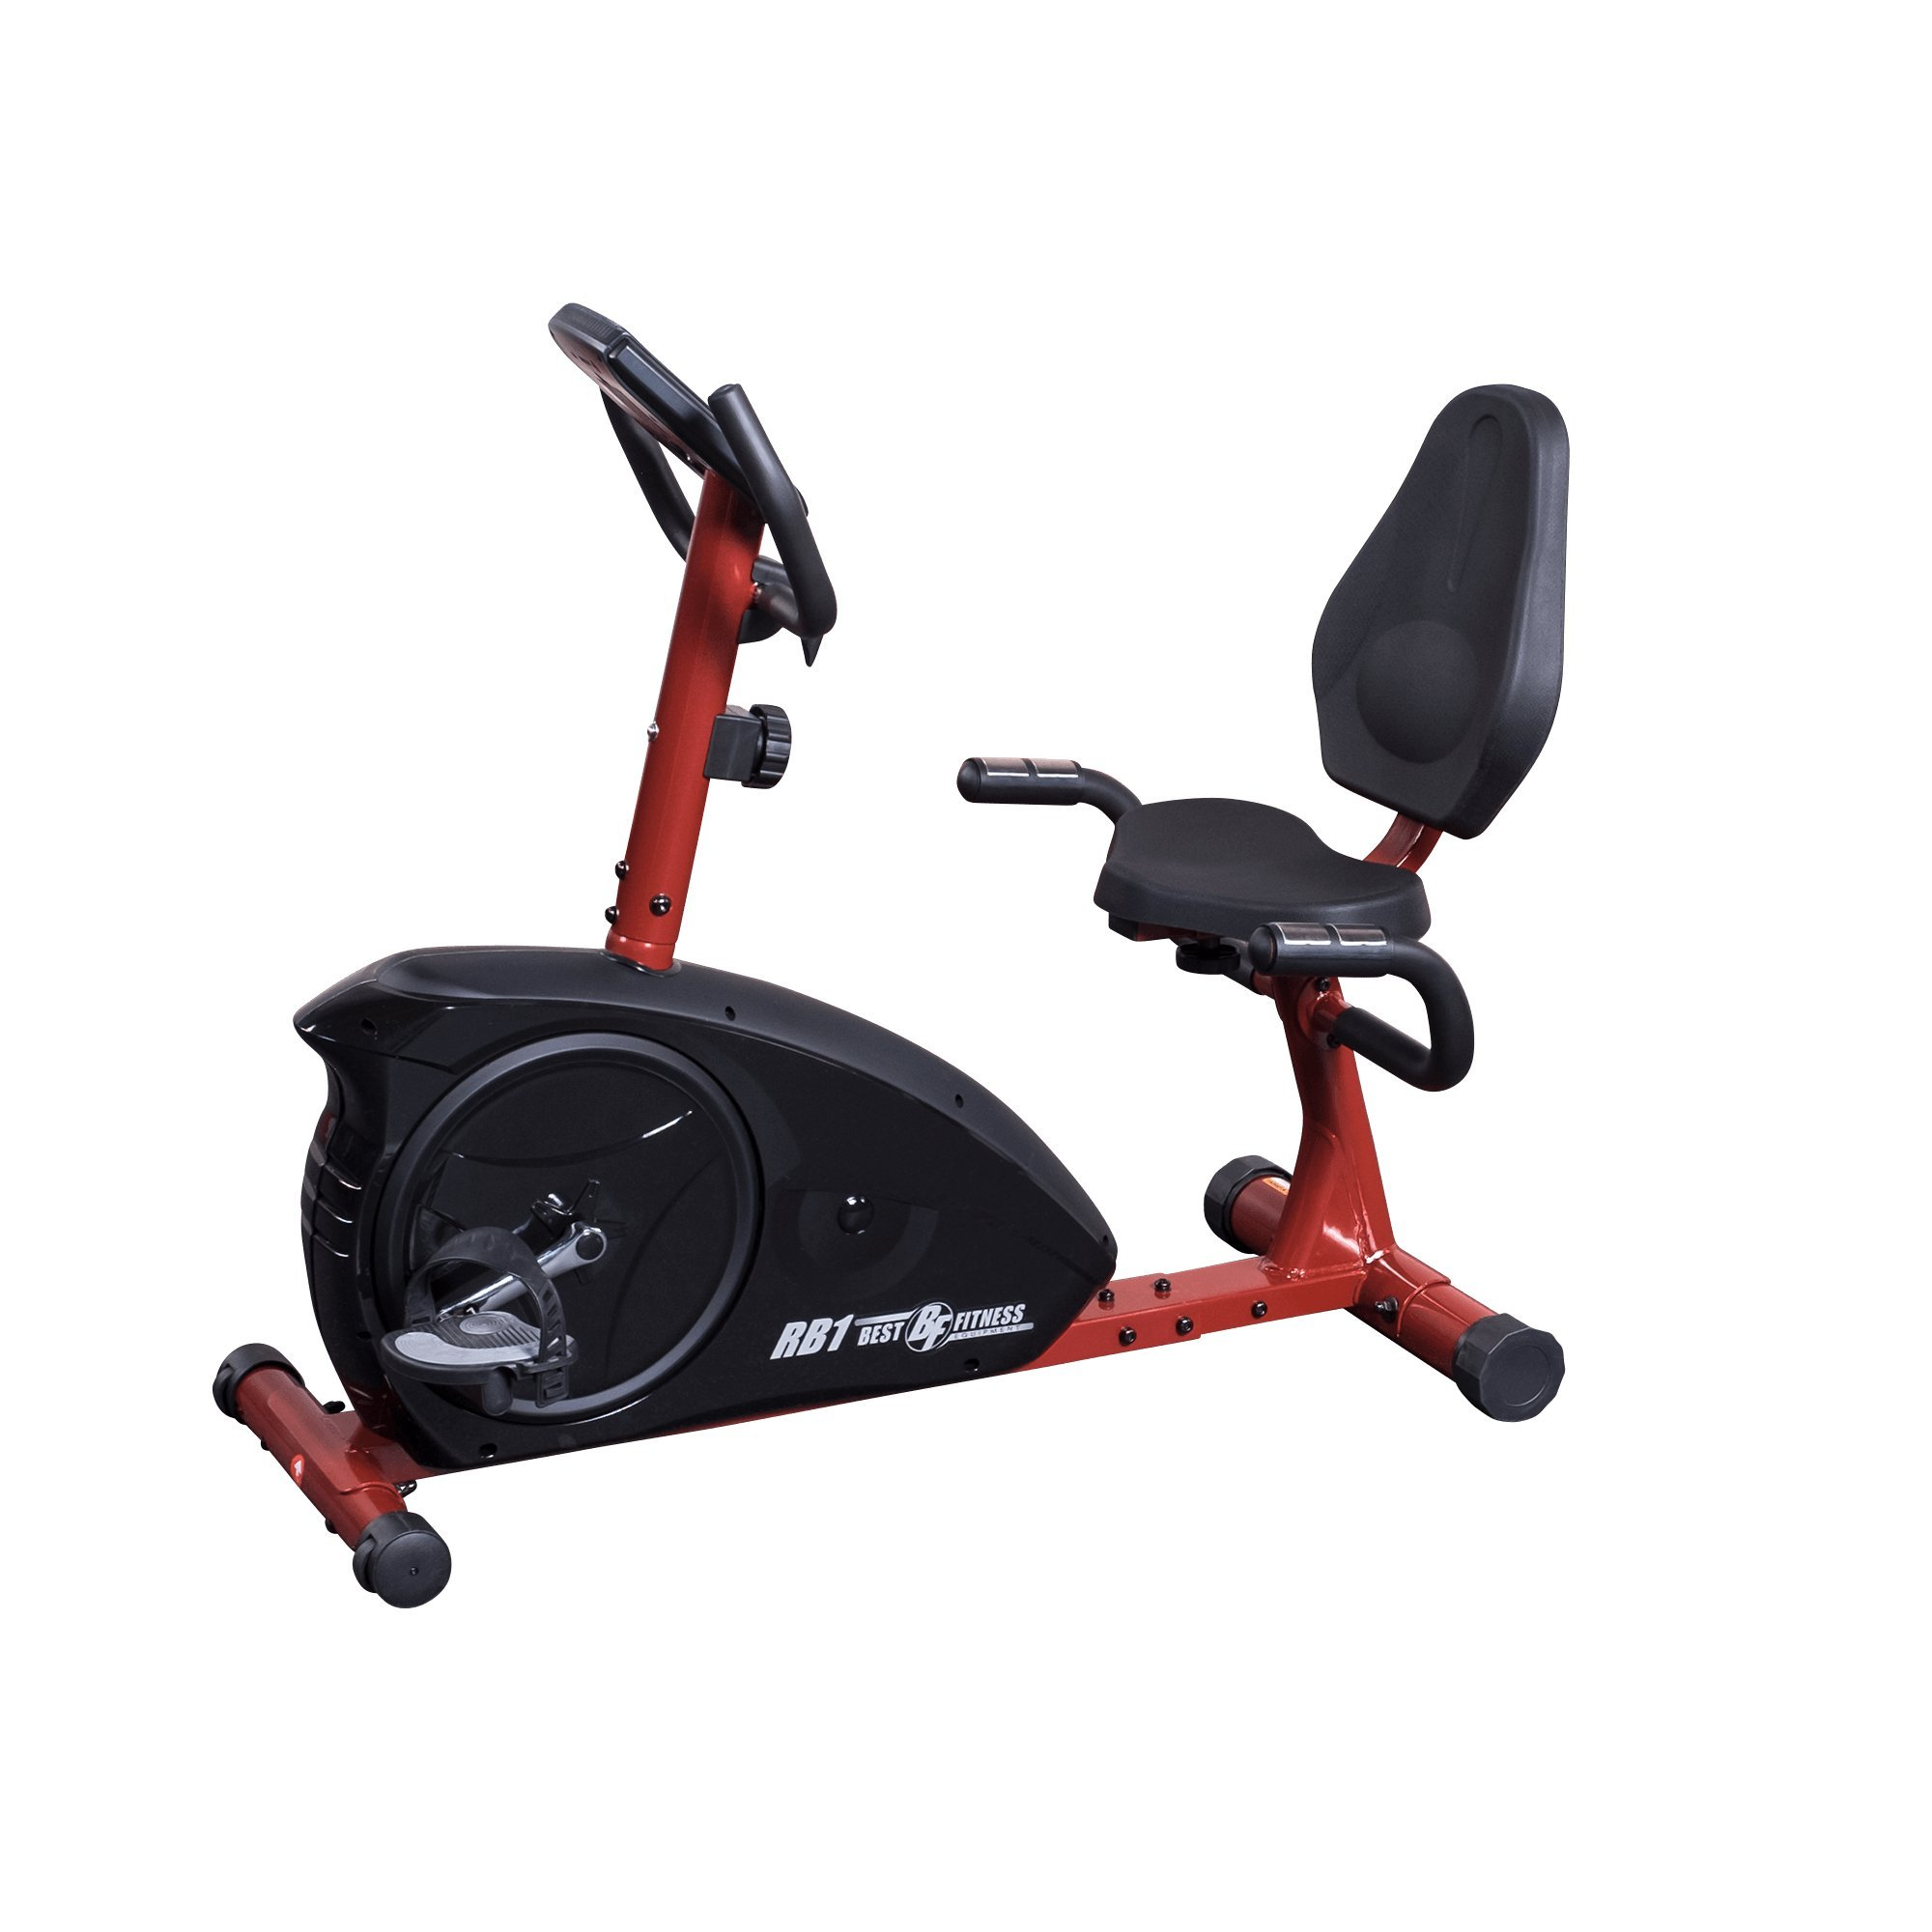 Best Fitness BFRB1 Recumbent Bike by Best Fitness (Image #1)